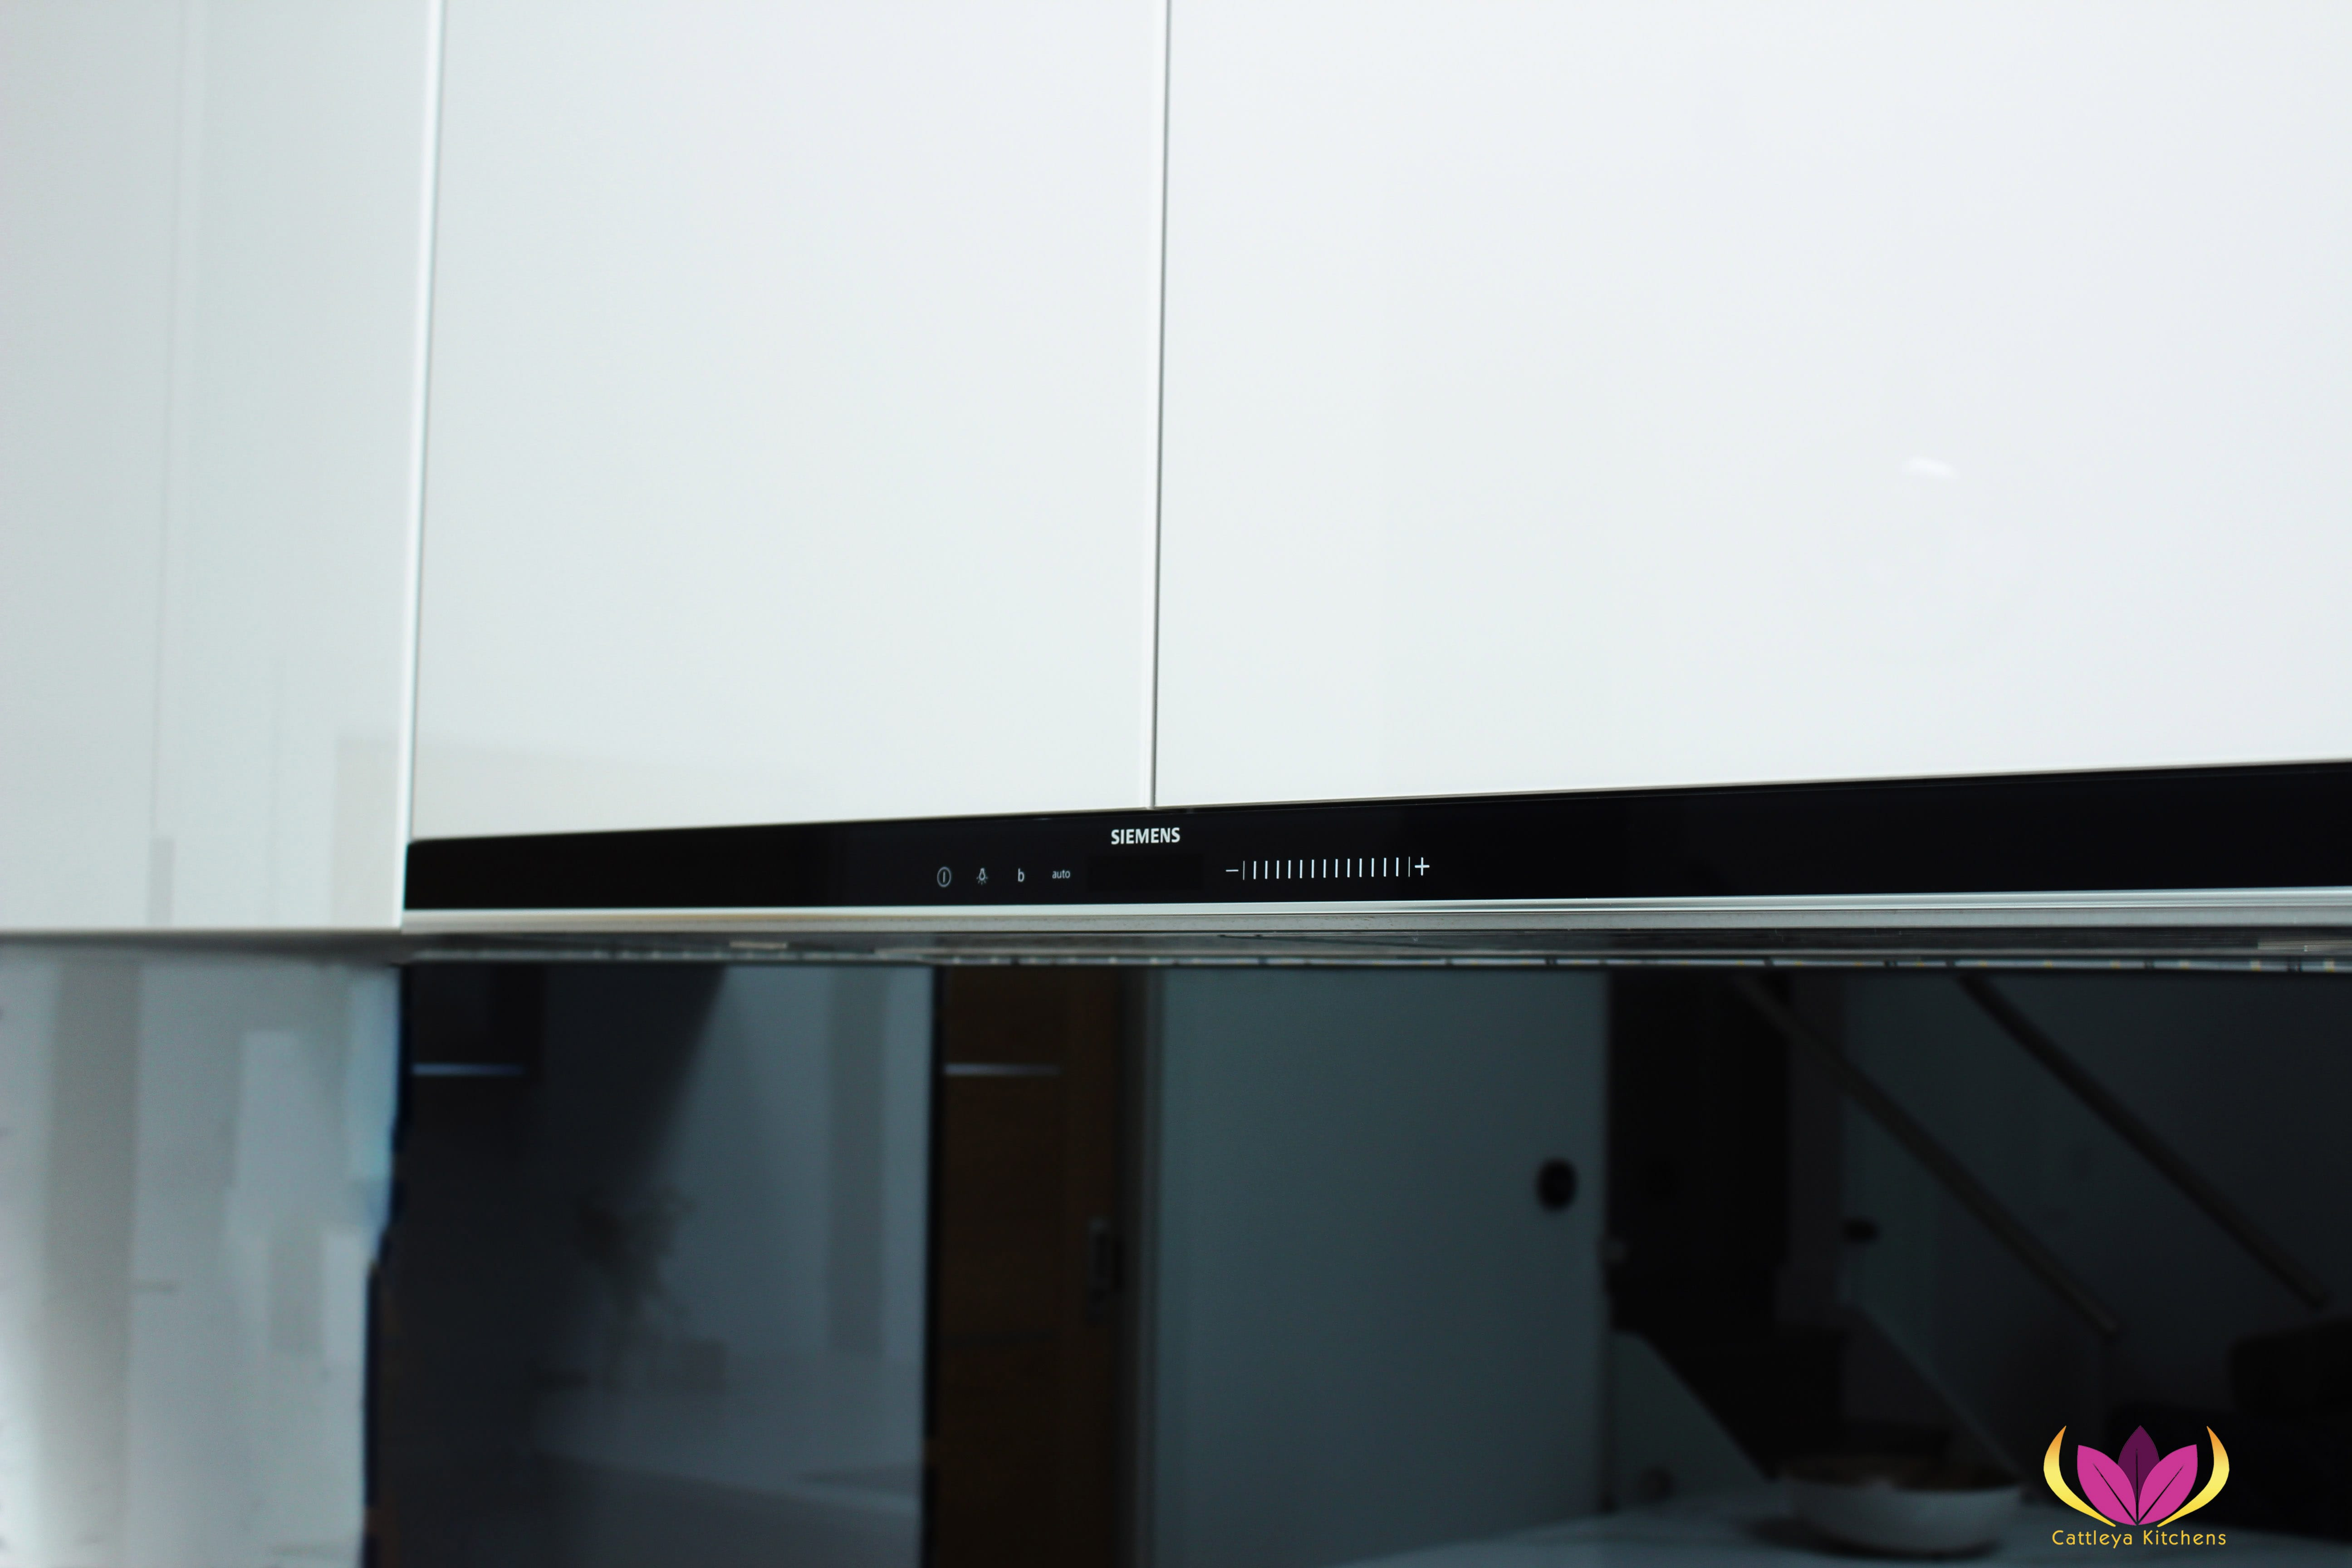 Siemens Venting hobs - Greenford Finished Kitchen Project